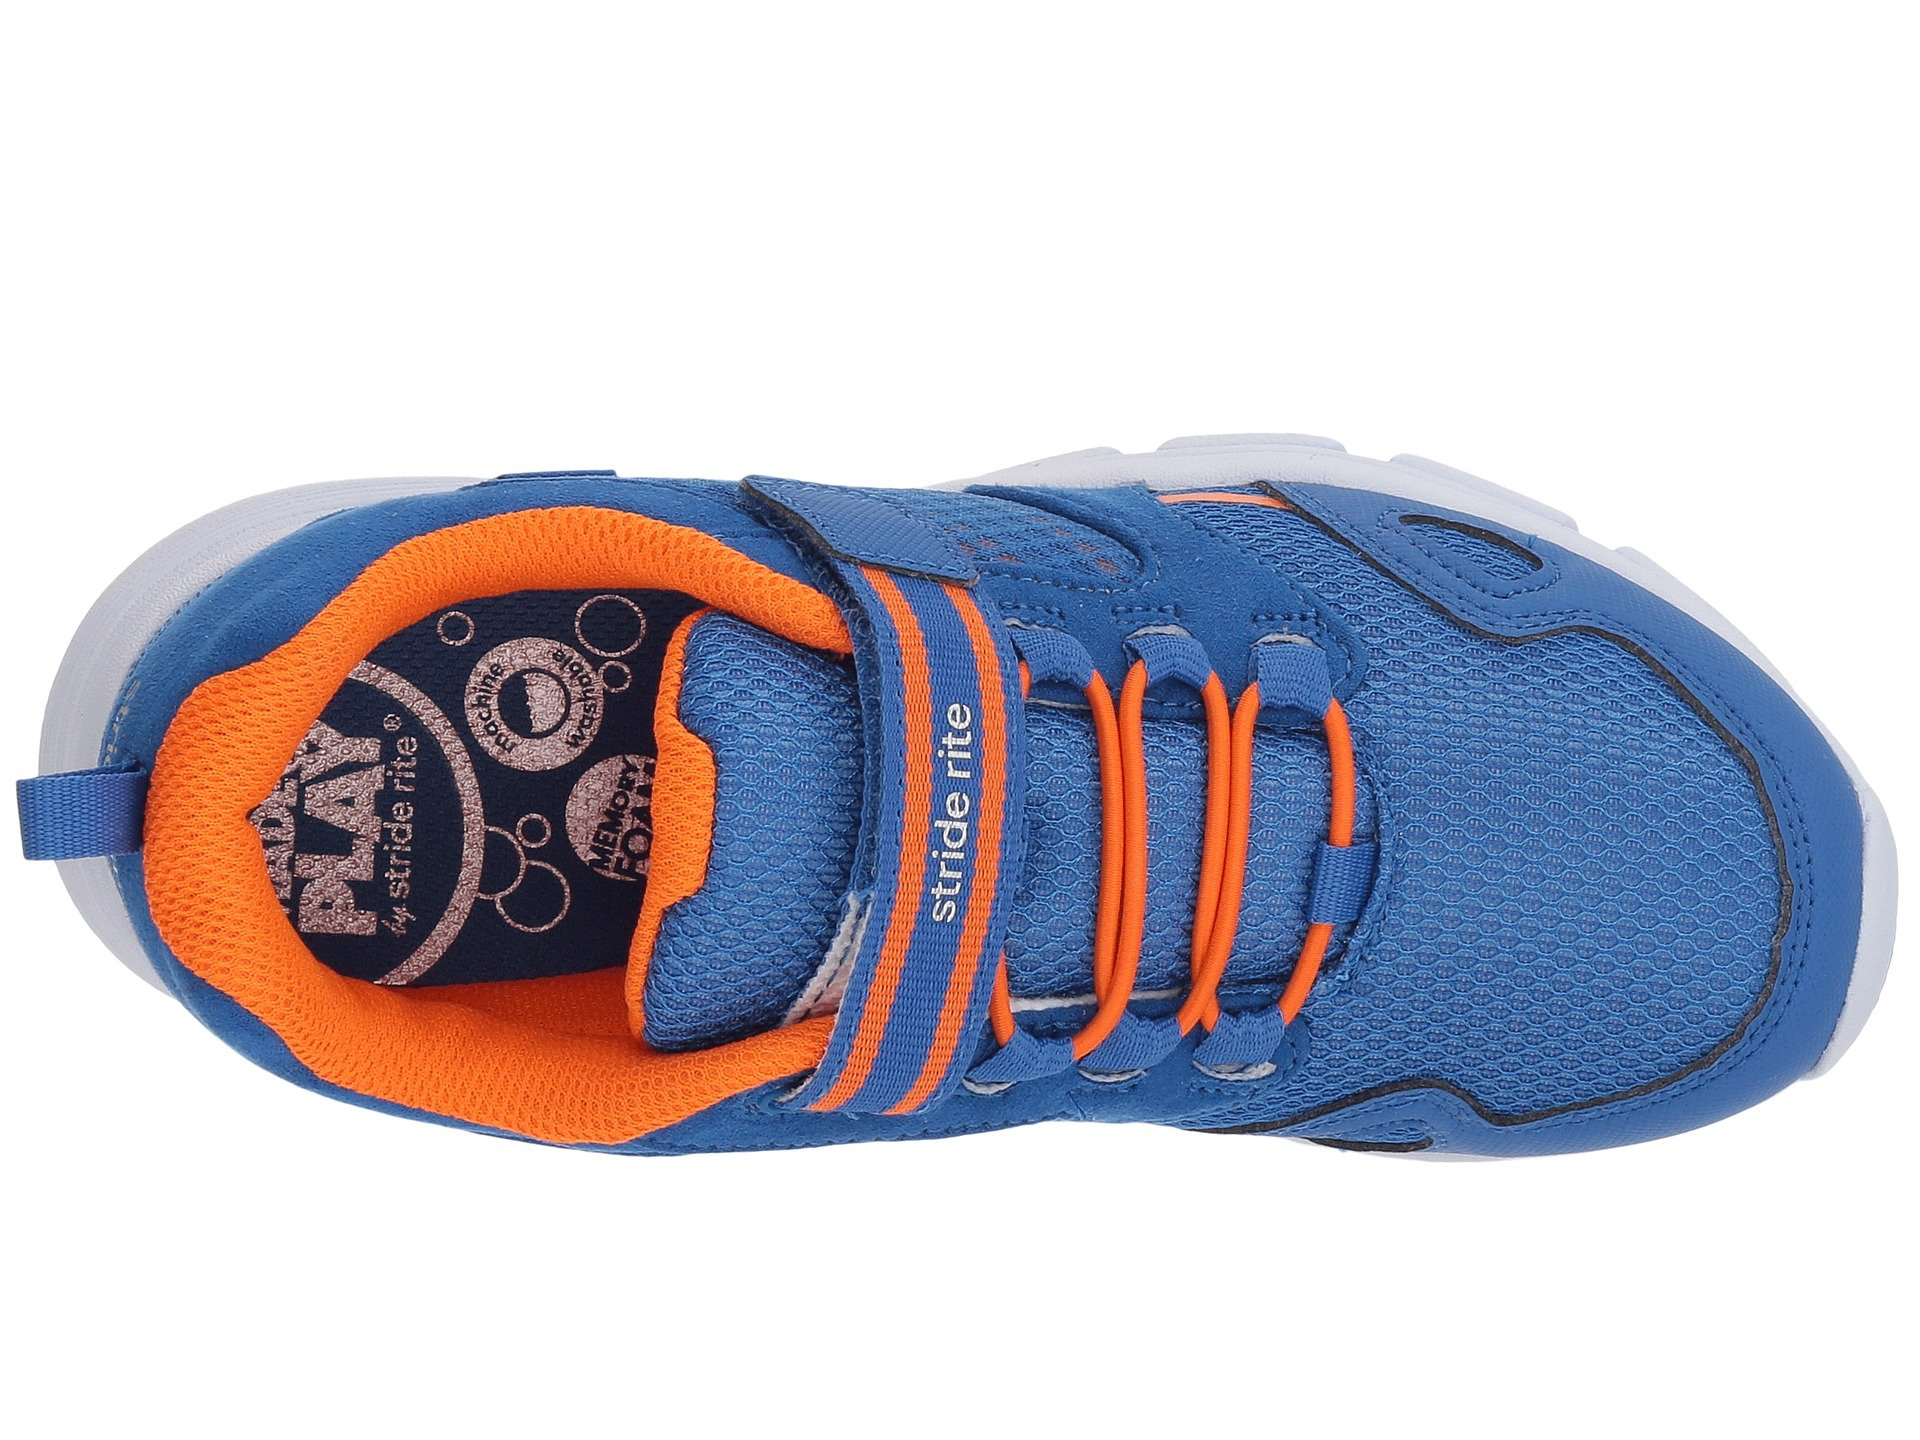 Stride Rite Mens Made 2 Play Taylor (Toddler/Little Kid) Royal 5.5 Toddler M by Stride Rite (Image #9)